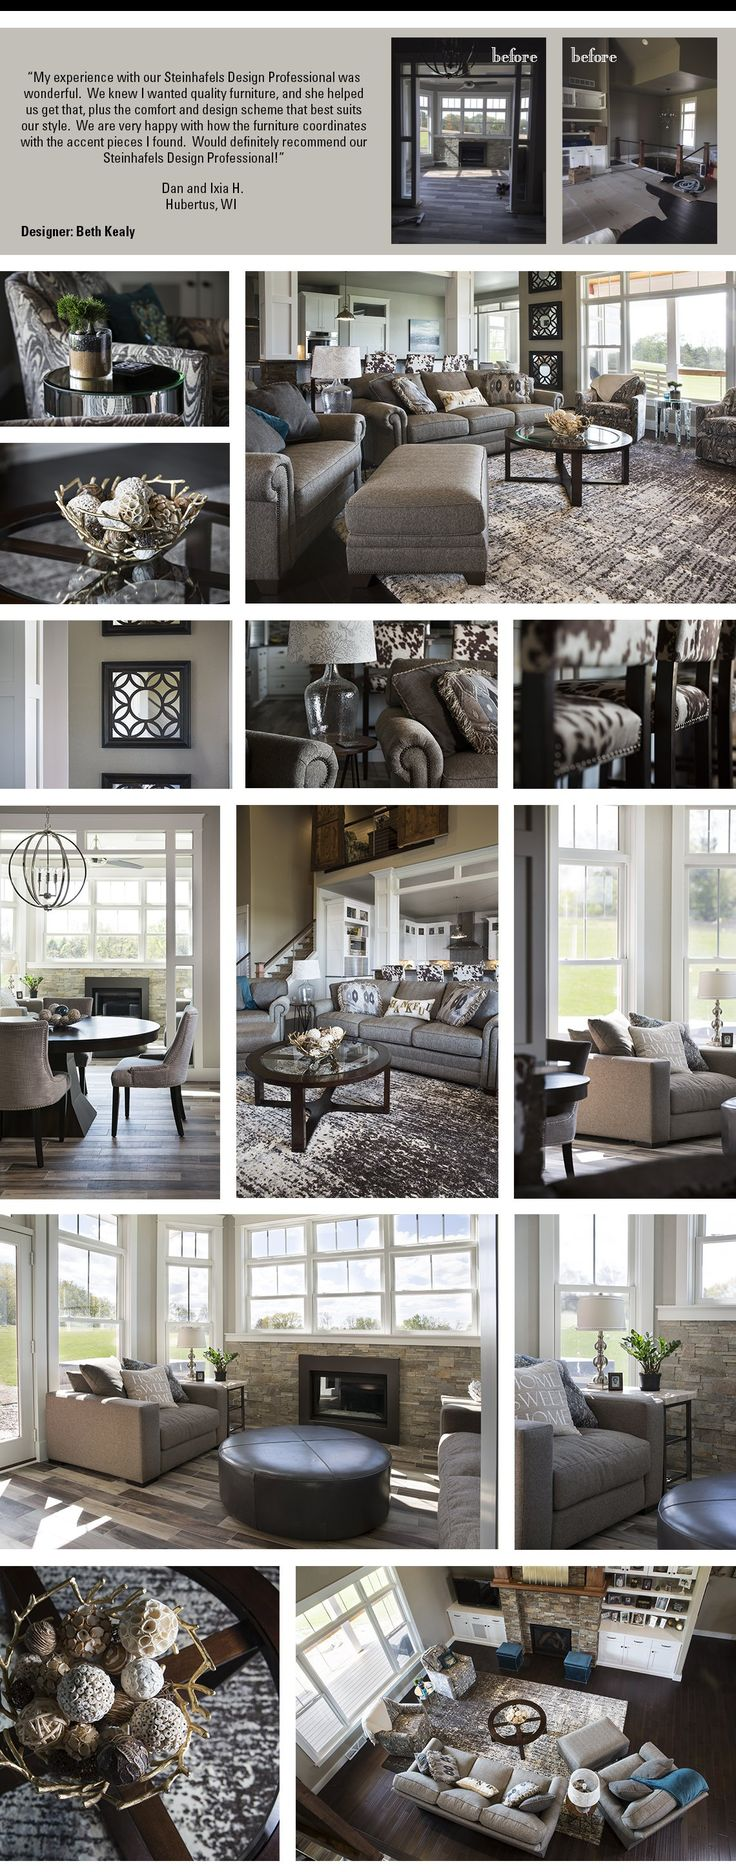 Rooms designed by Steinhafels Decorating Solutions Designer: Beth Kealy